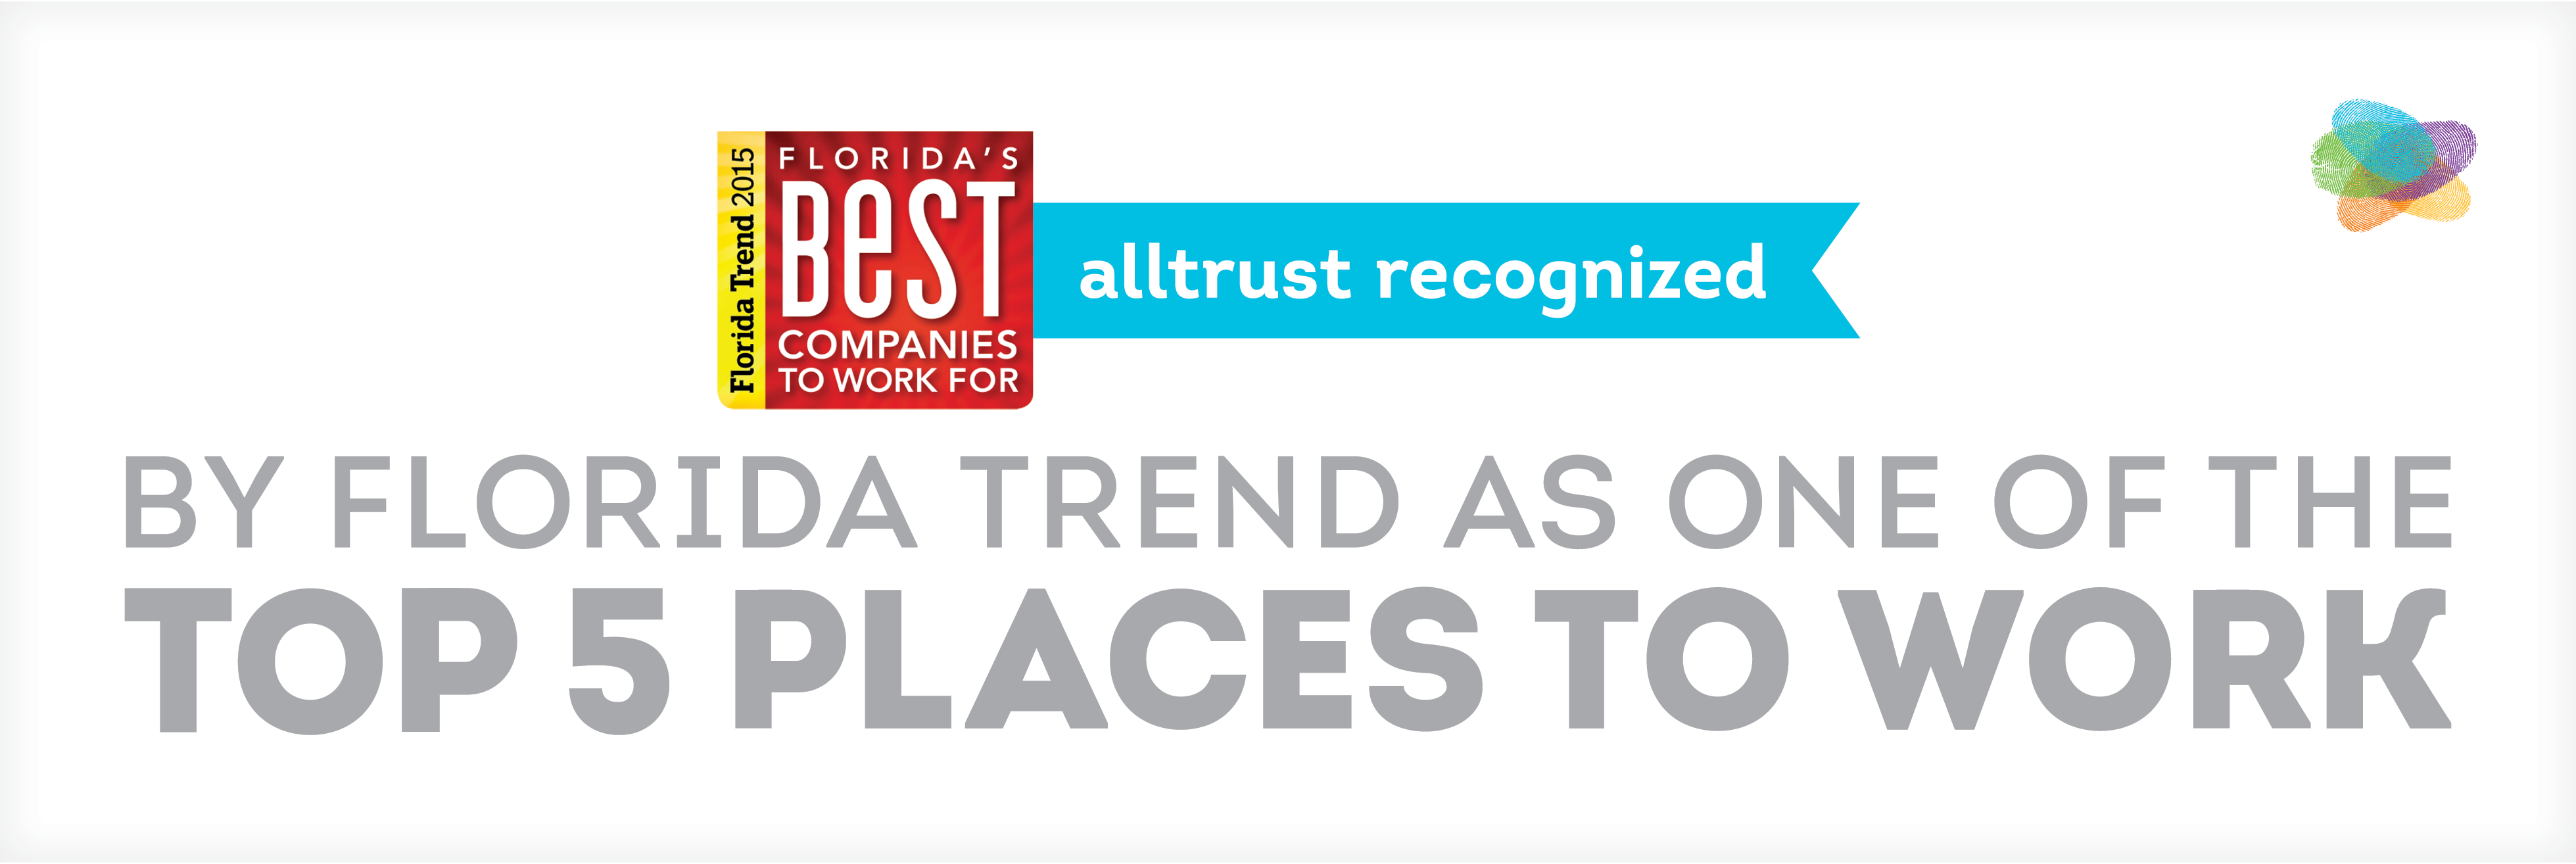 Alltrust Named One of Florida Trend's Best Companies to Work For